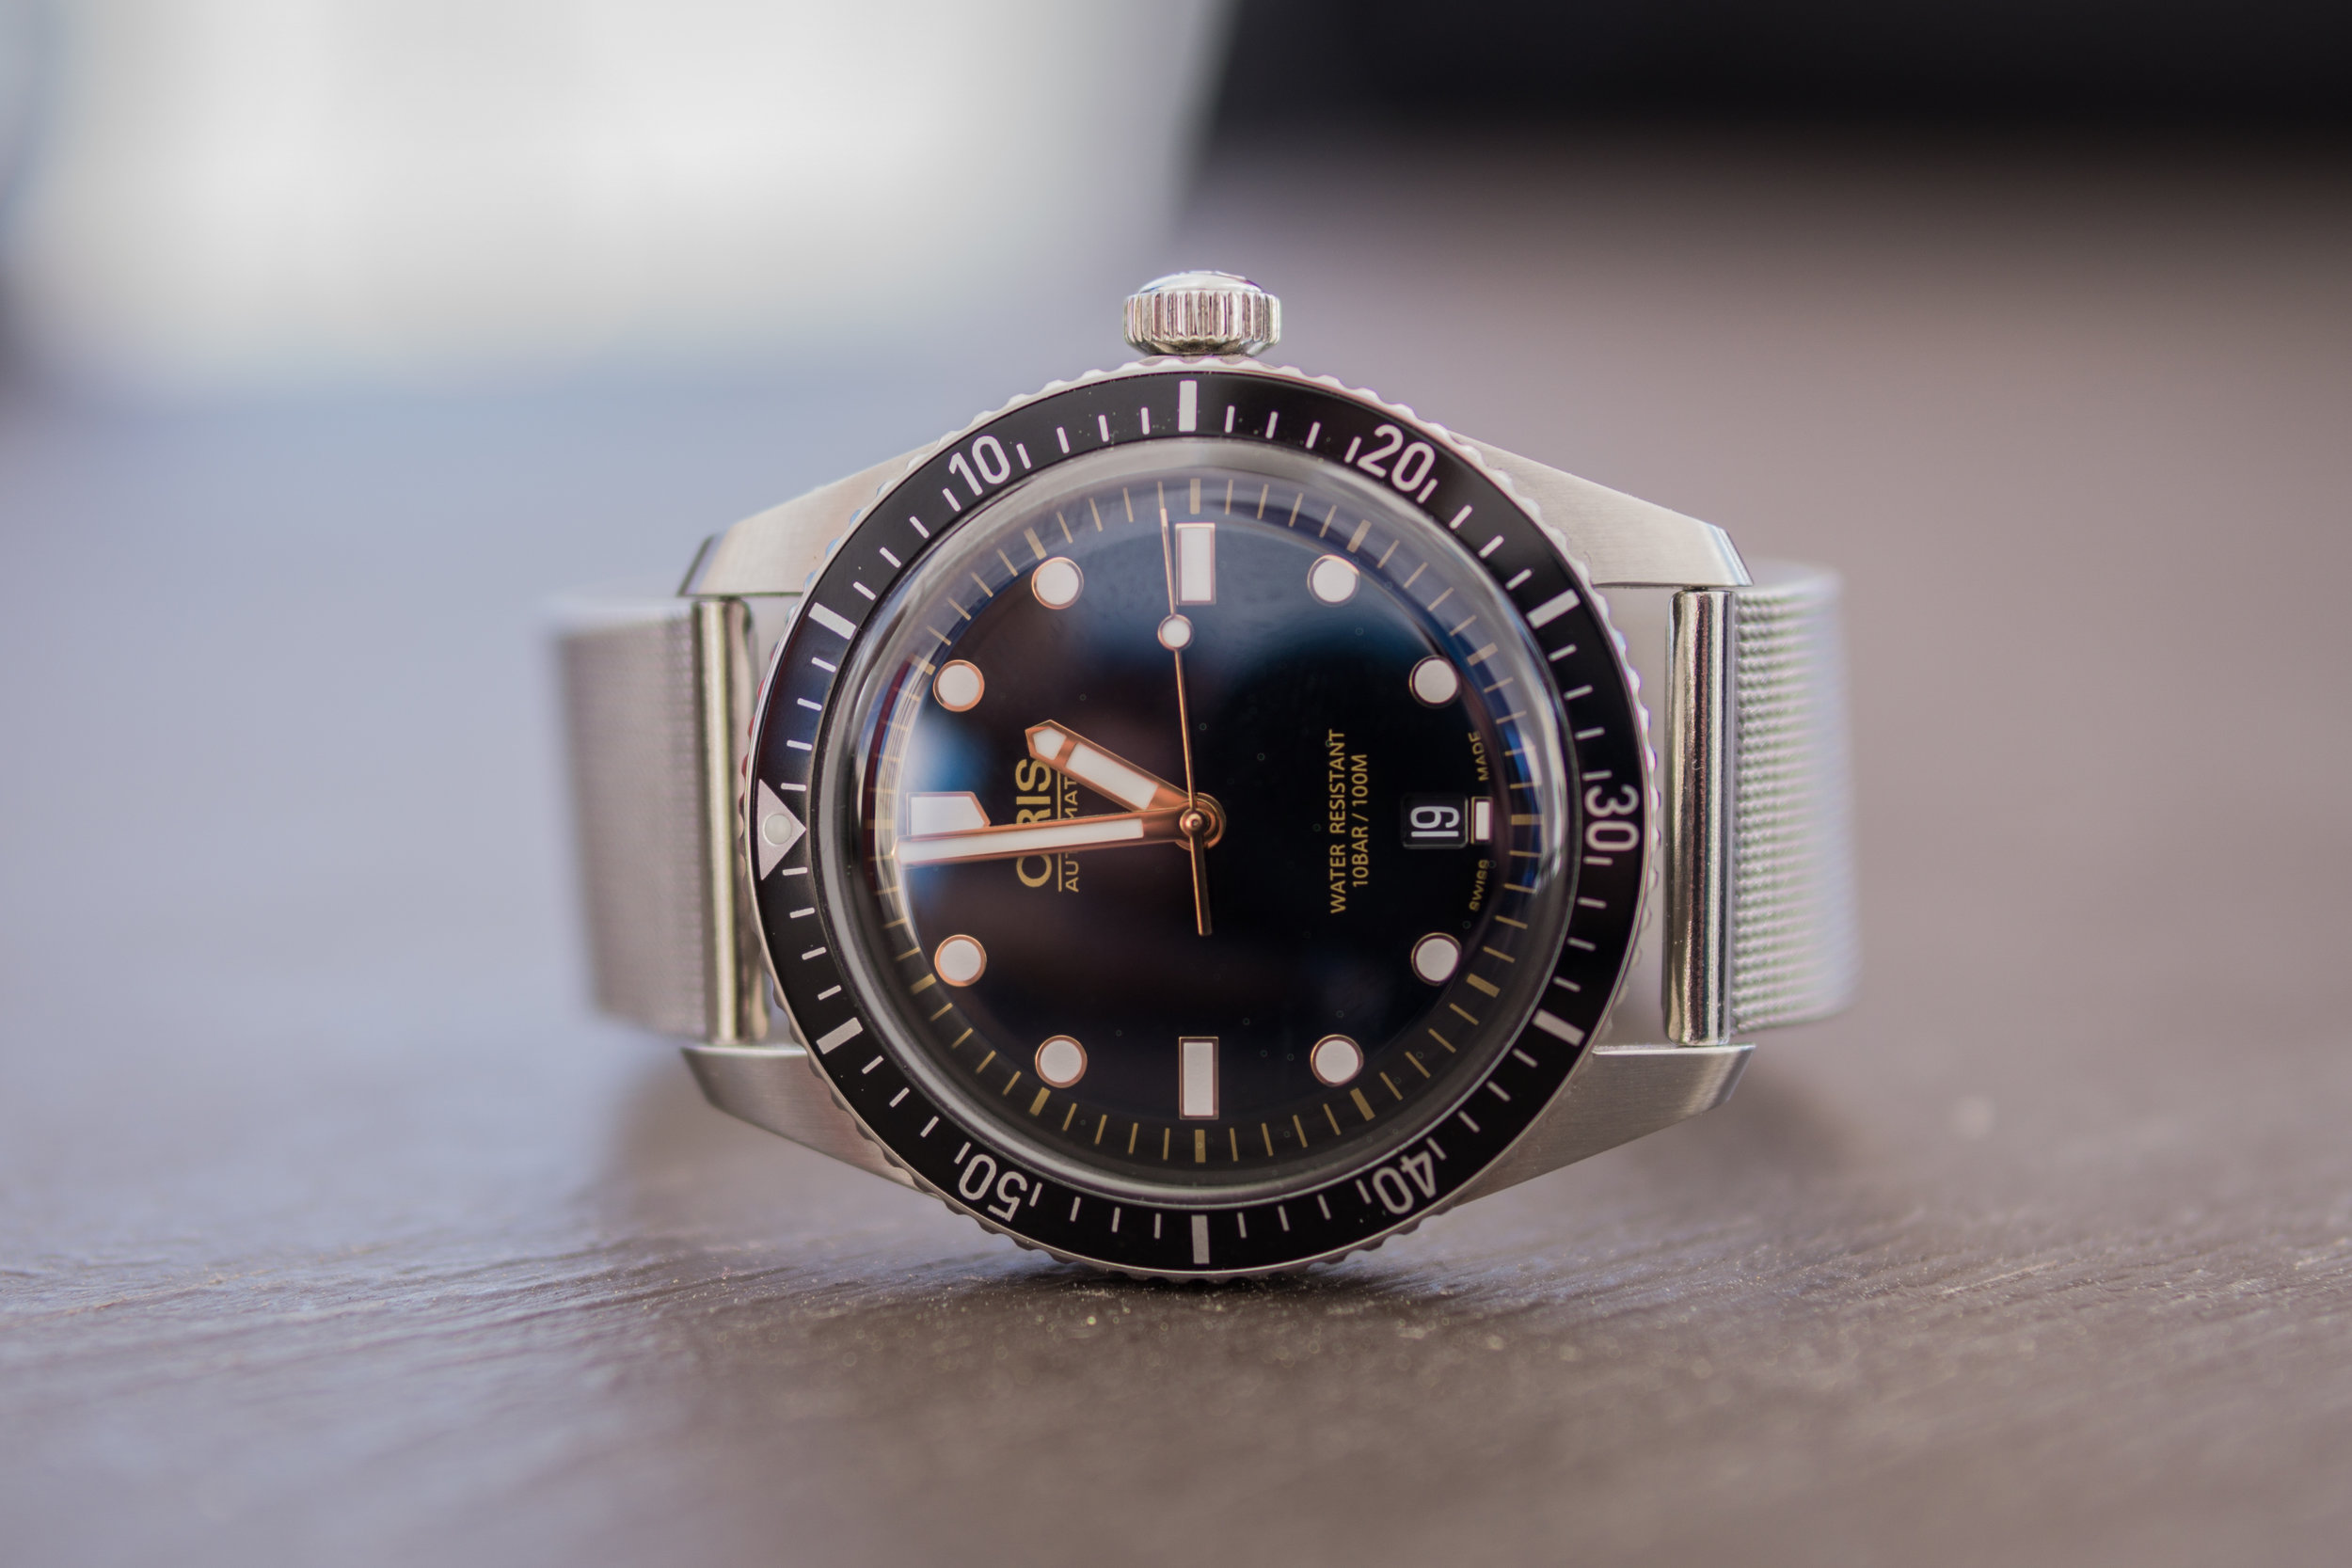 Oris Divers Sixty-Five Movember Limited Edition